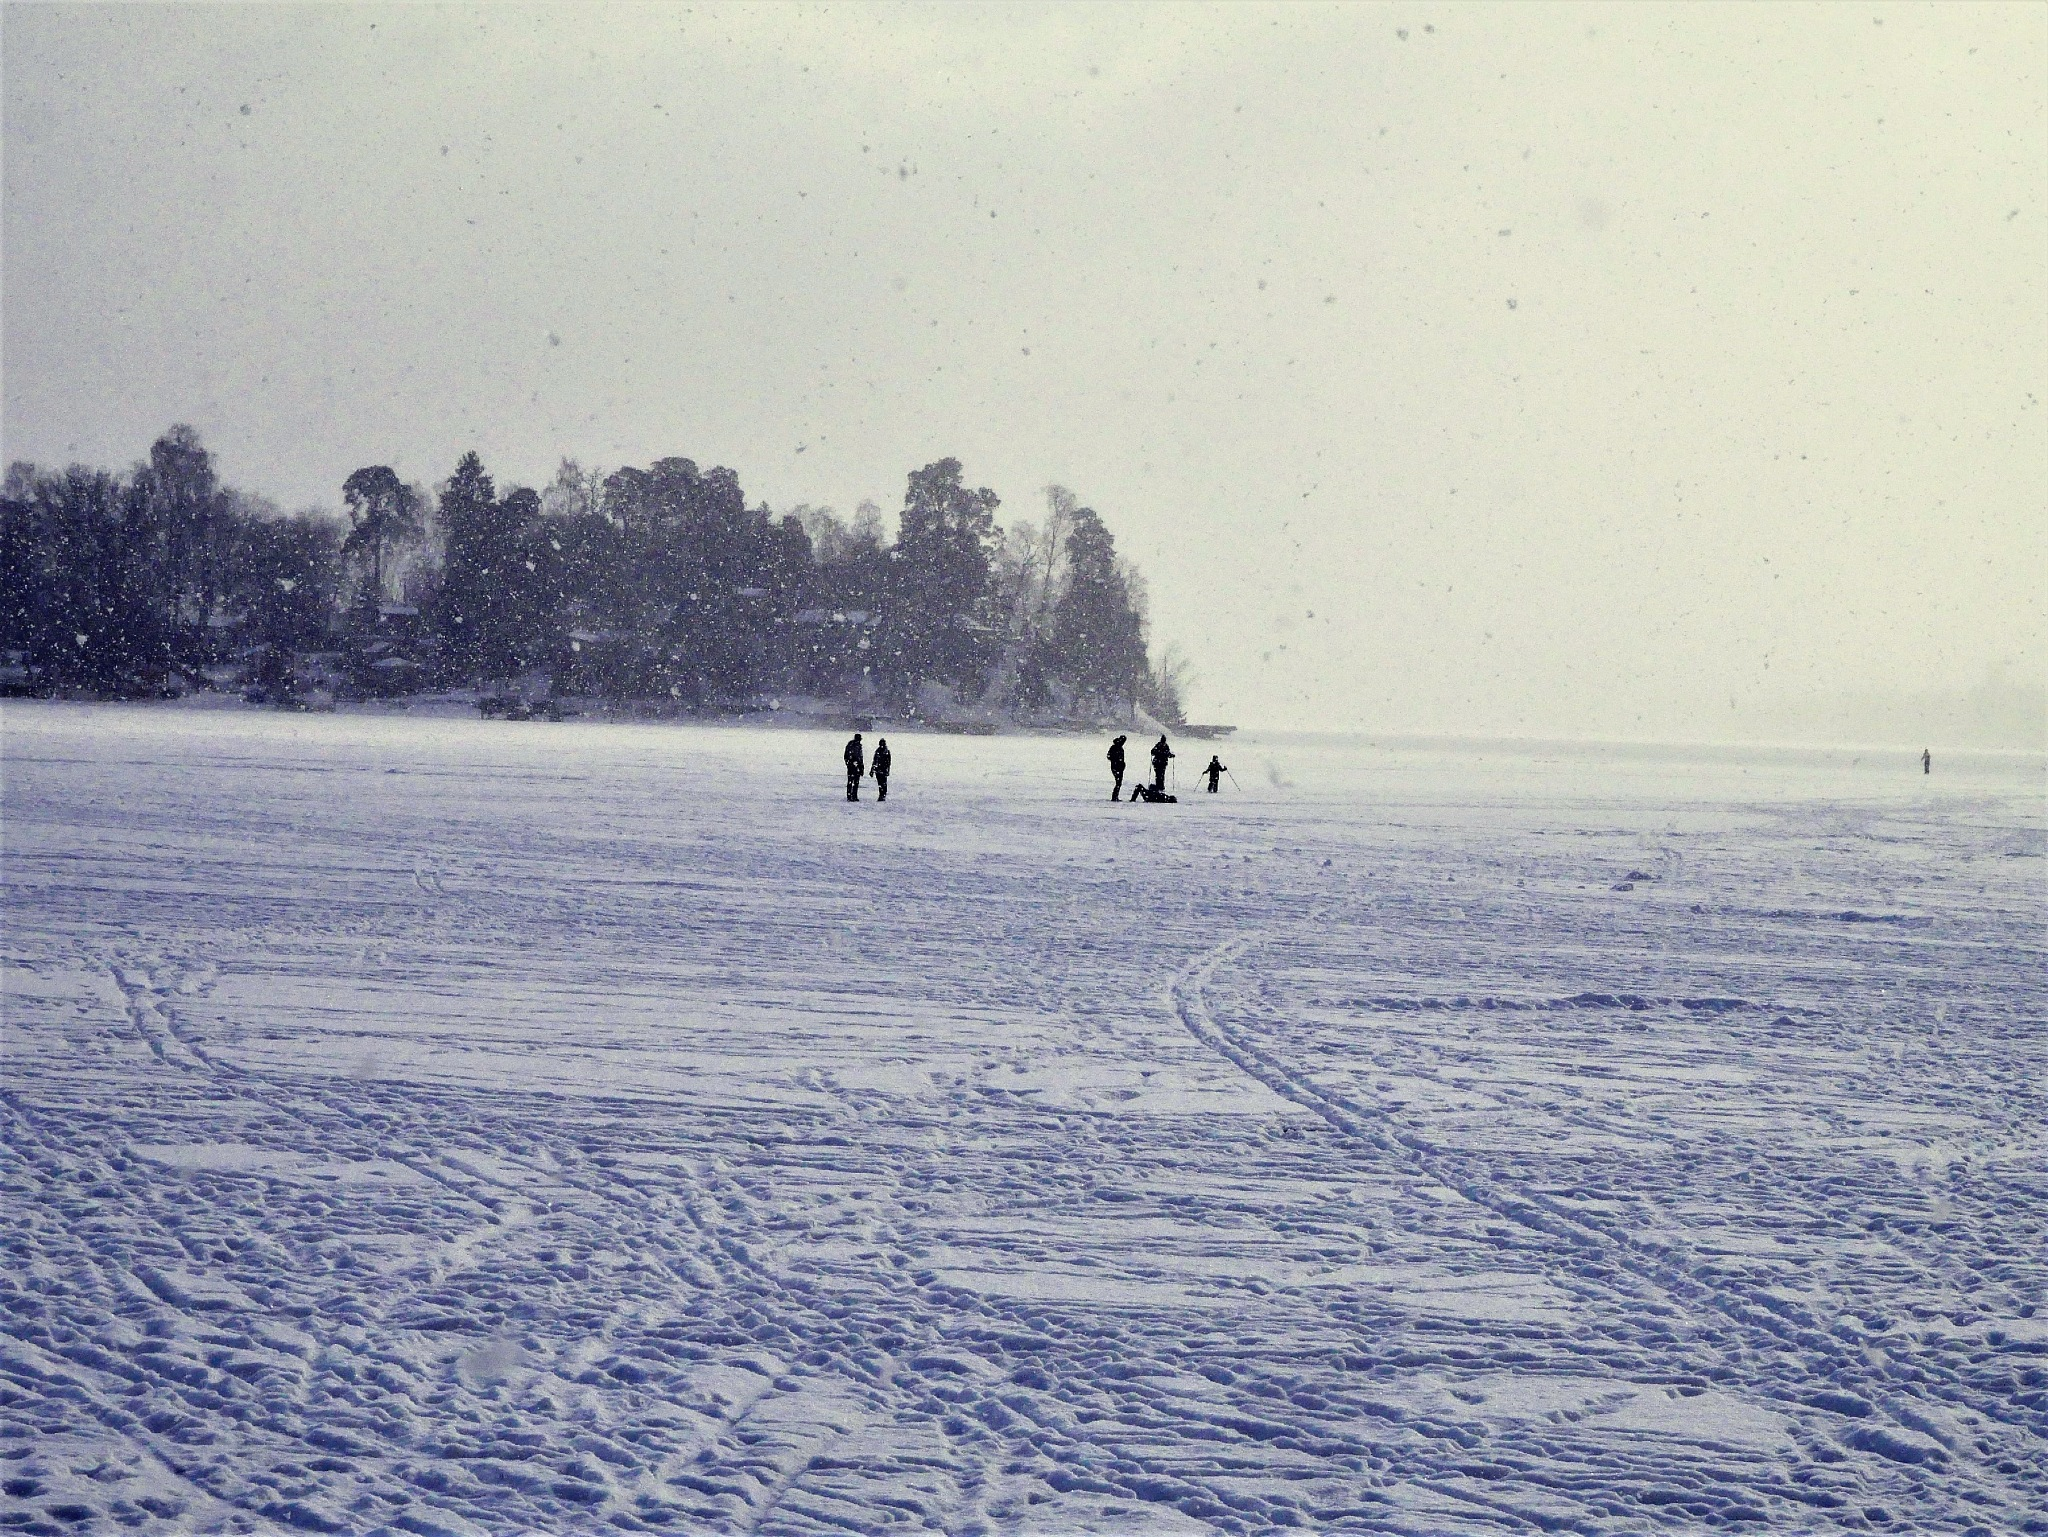 People on the ice on a cold day! by Cicki Jarneberg